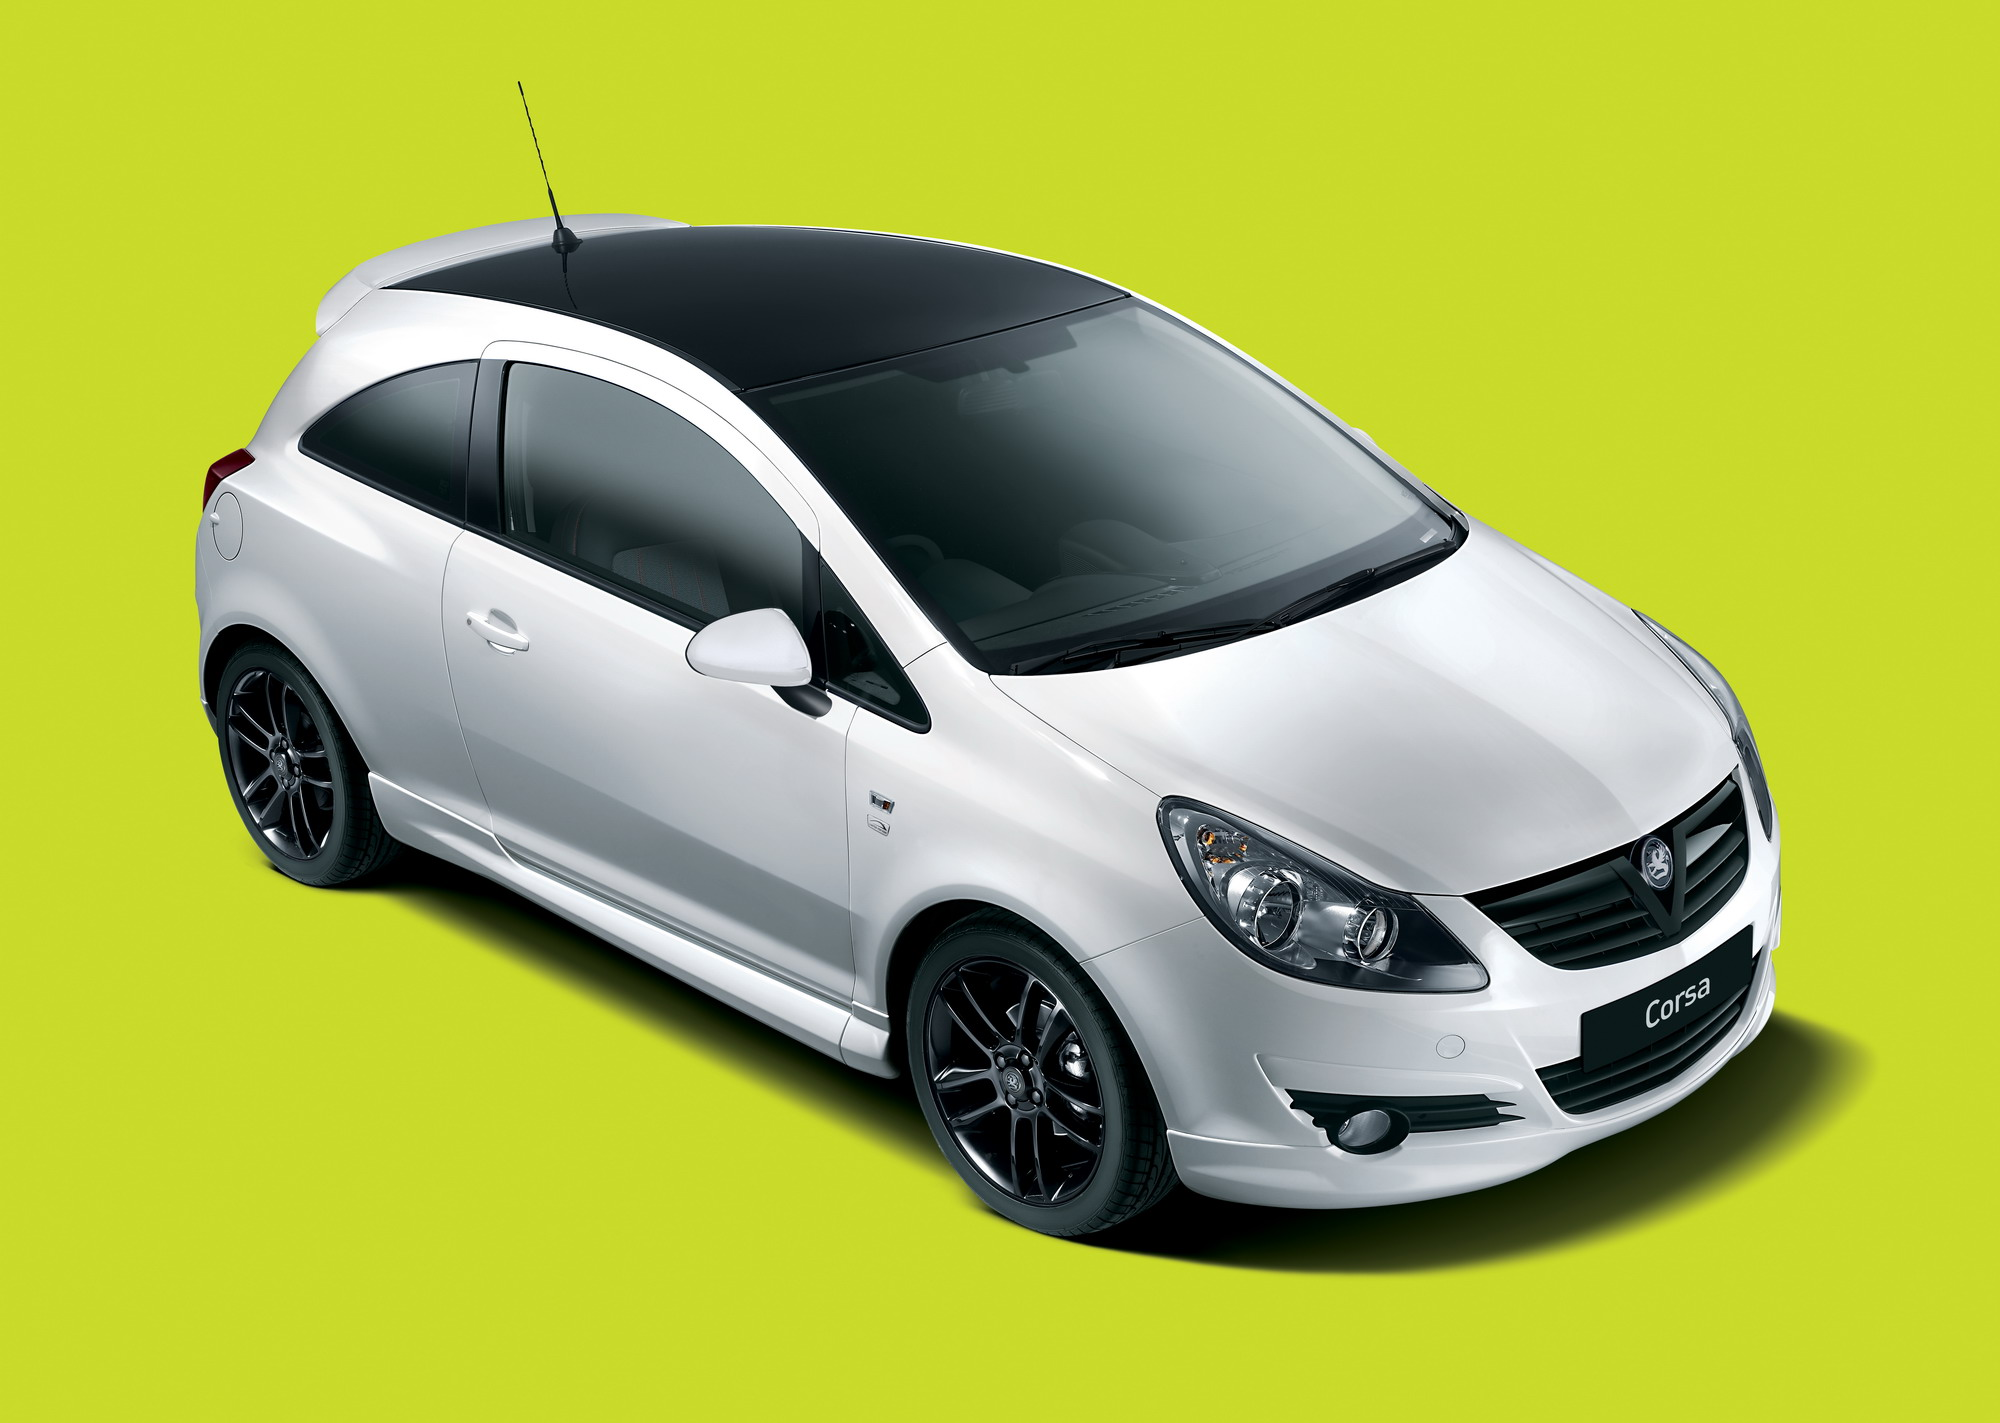 2010 Vauxhall Corsa Black And White Limited Edition Top